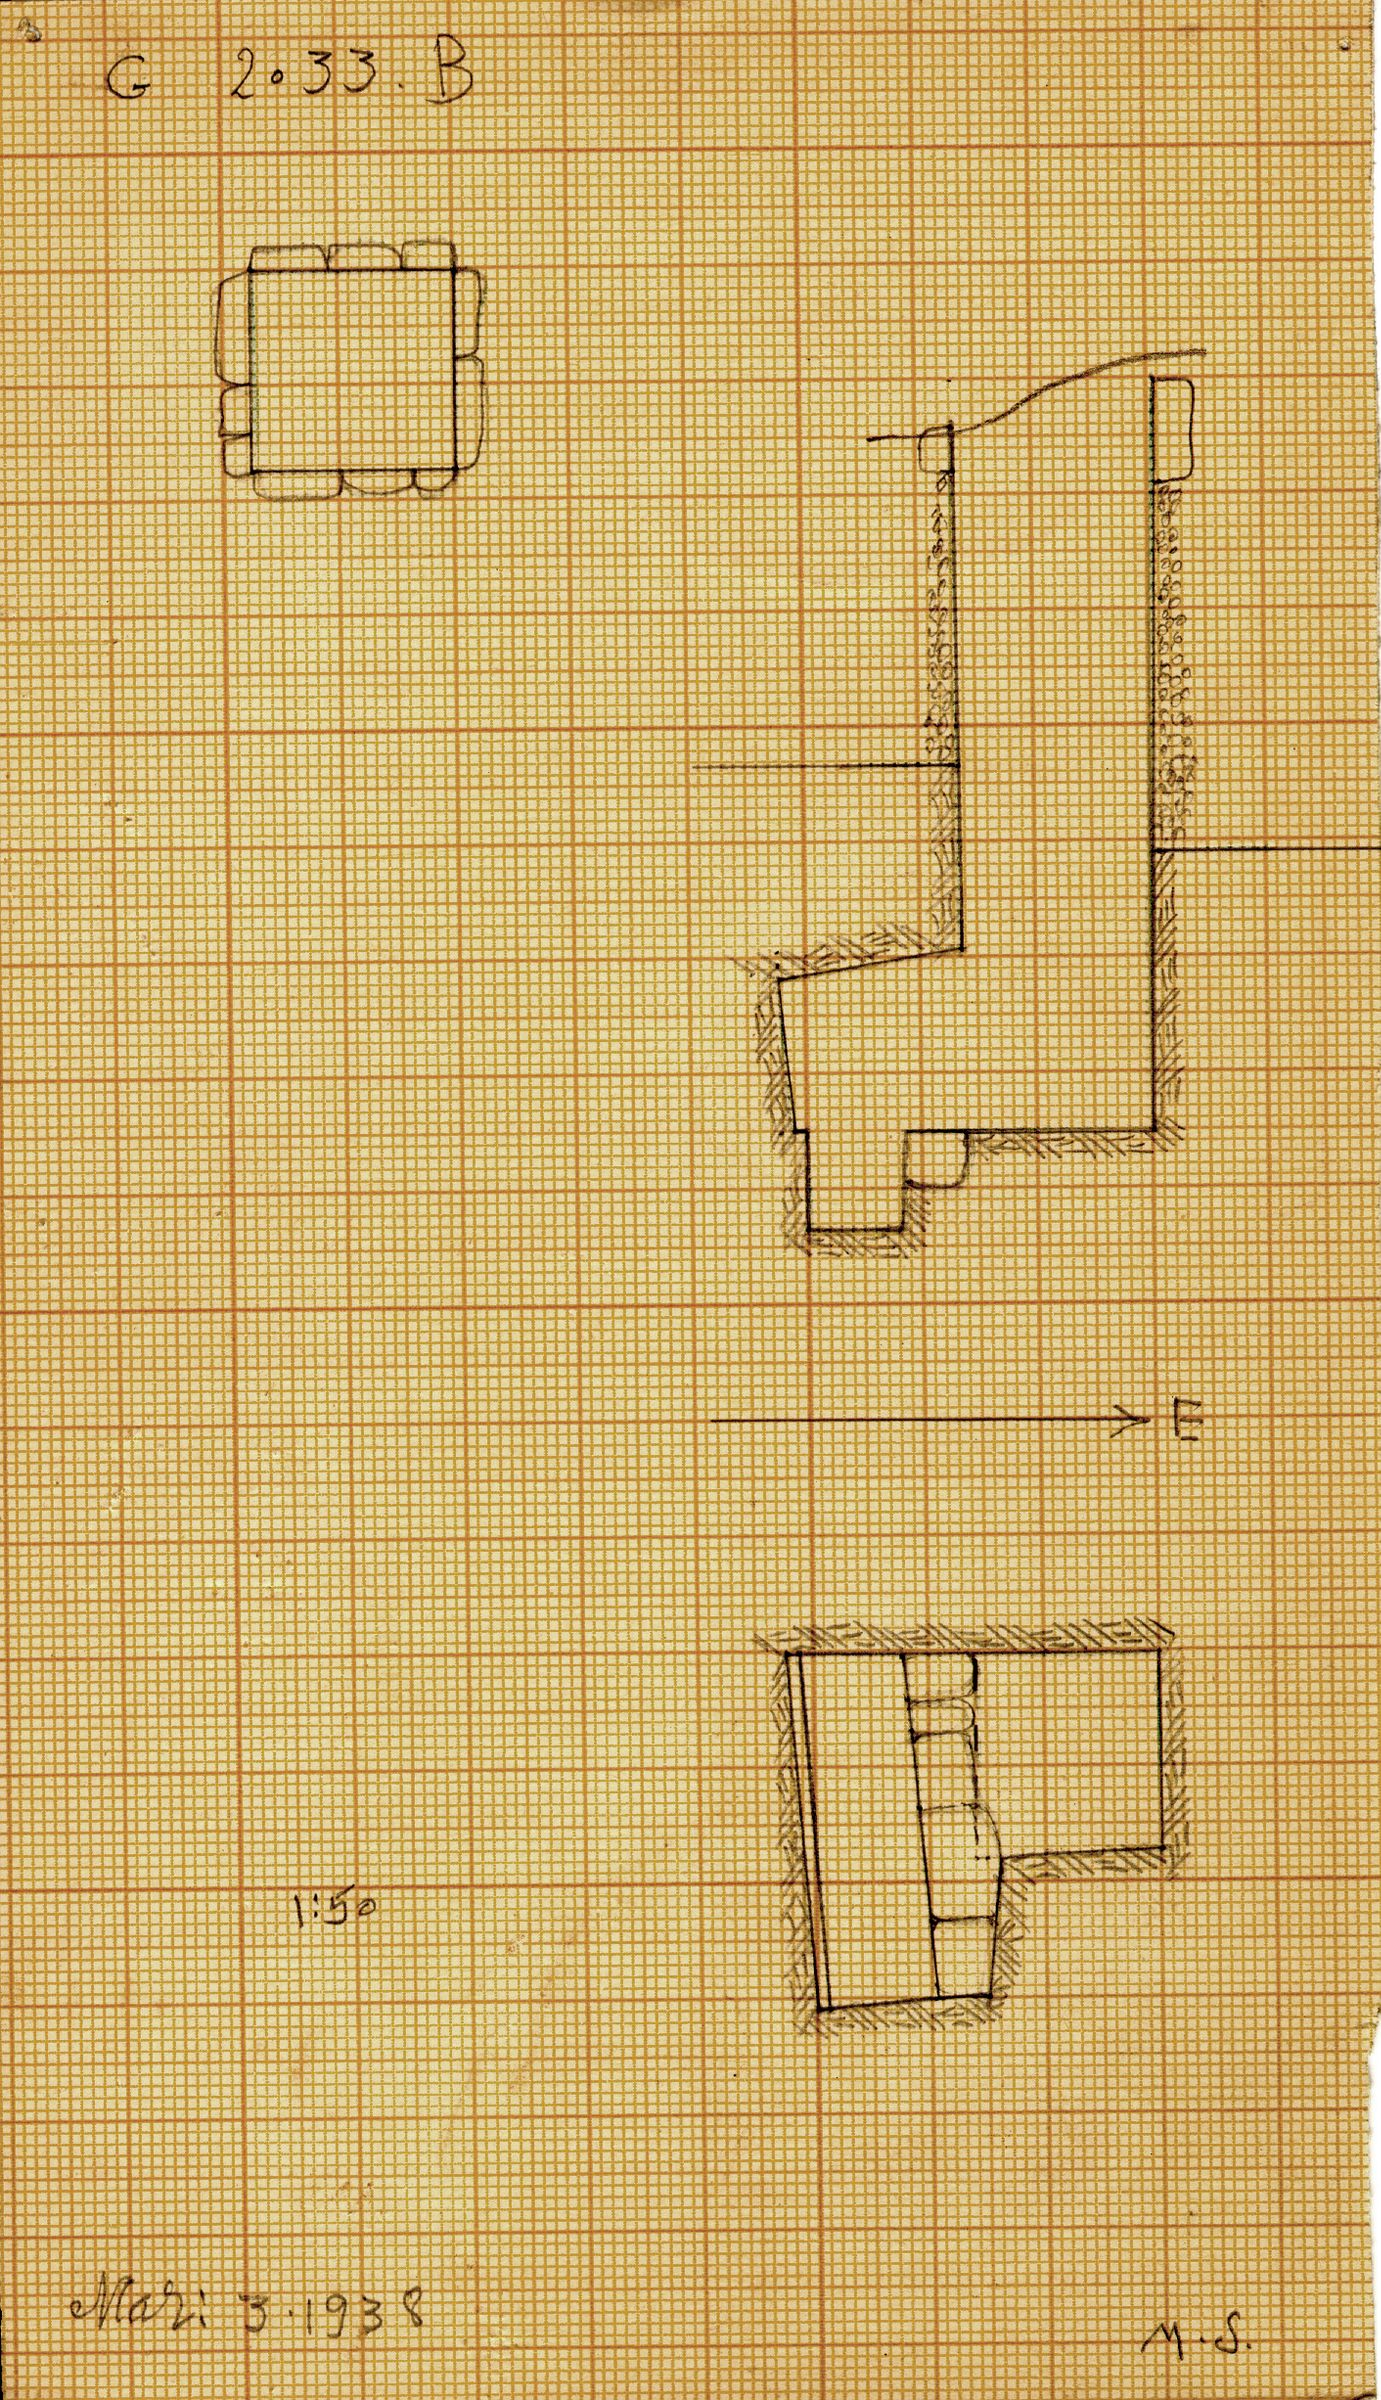 Maps and plans: G 2033, Shaft B